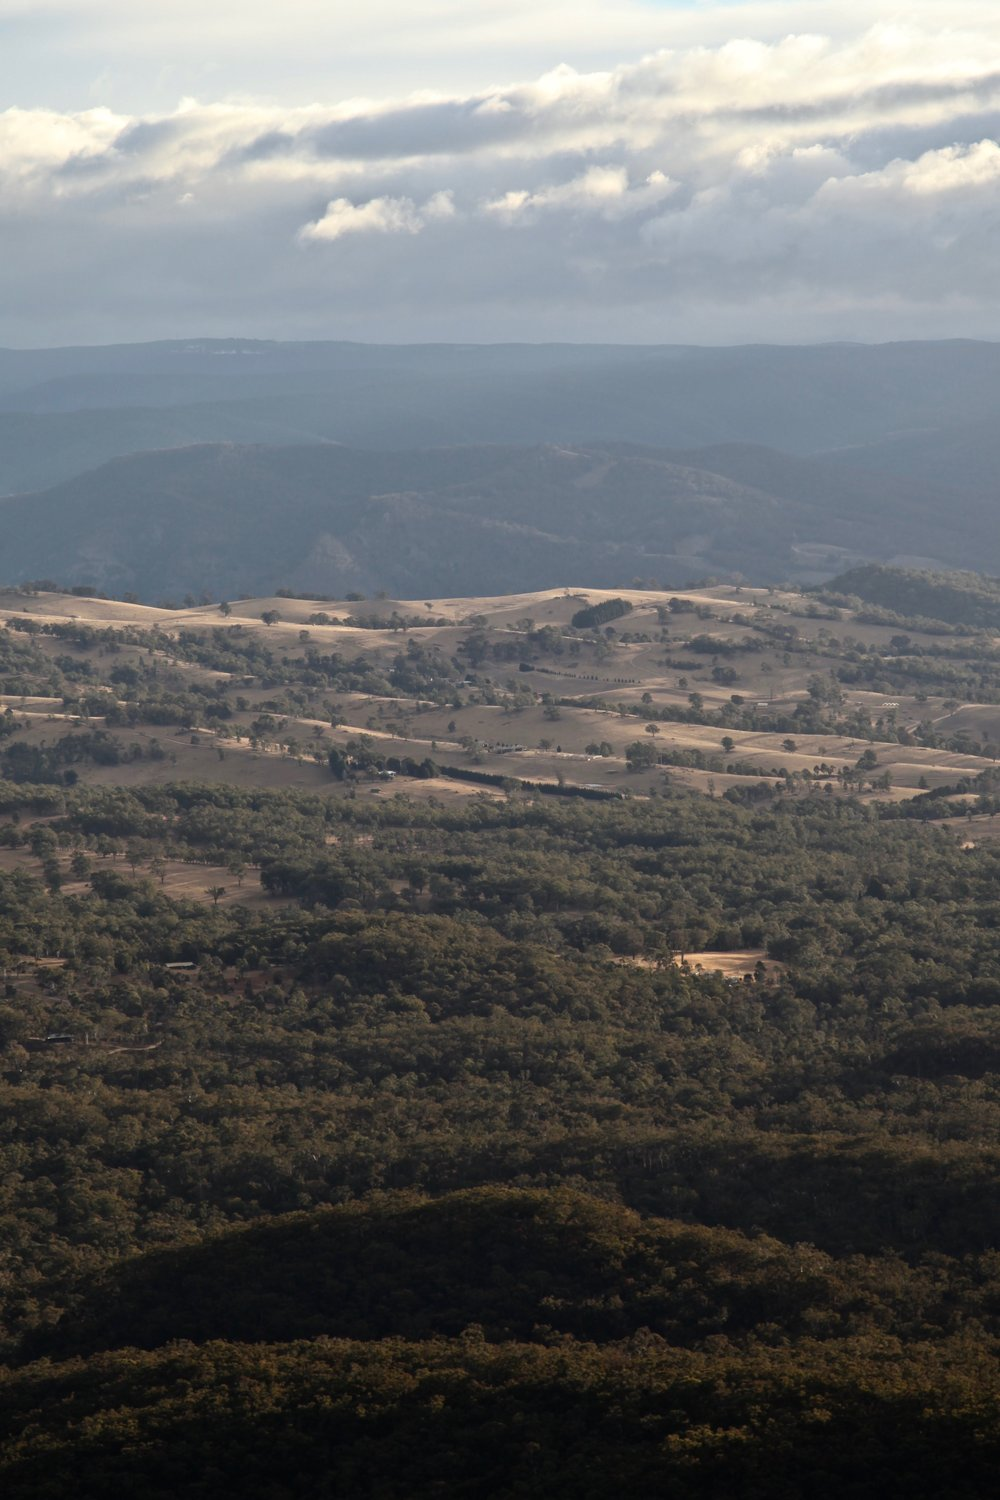 view-from-cahills-lookout-katoomba.jpg